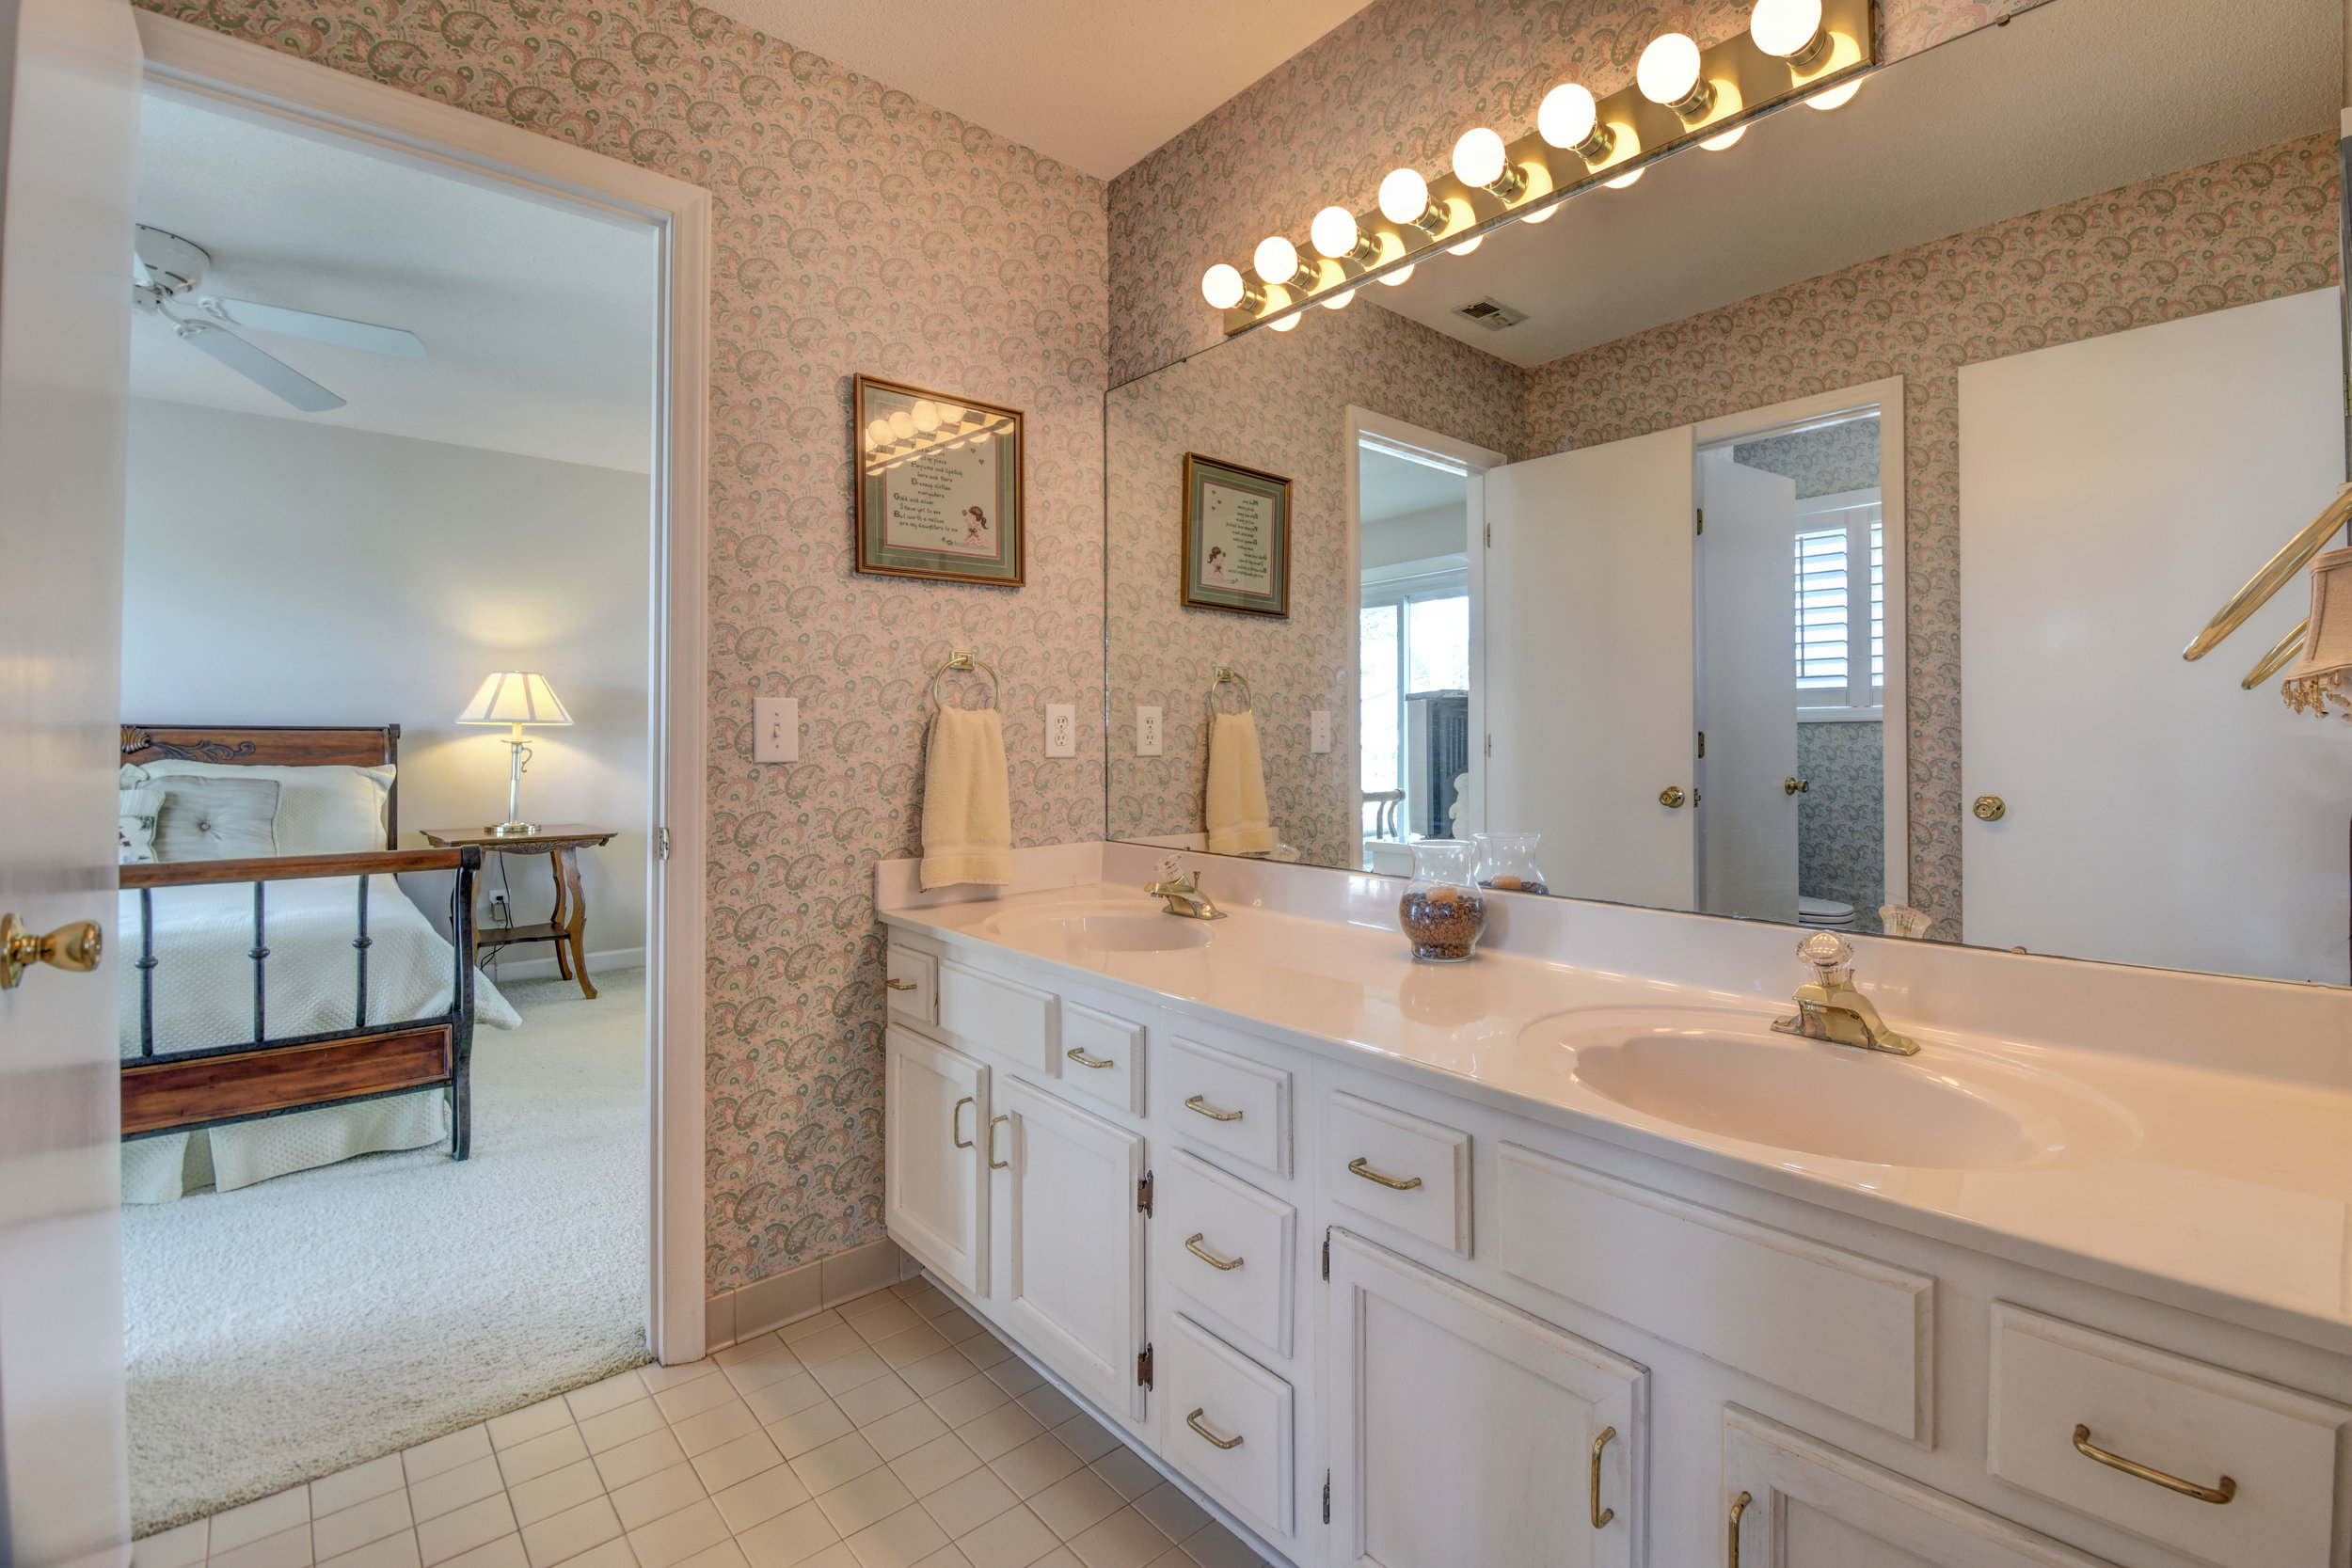 842 Shinn Point Rd Wilmington-print-046-83-Bathroom 3-4200x2800-300dpi.jpg